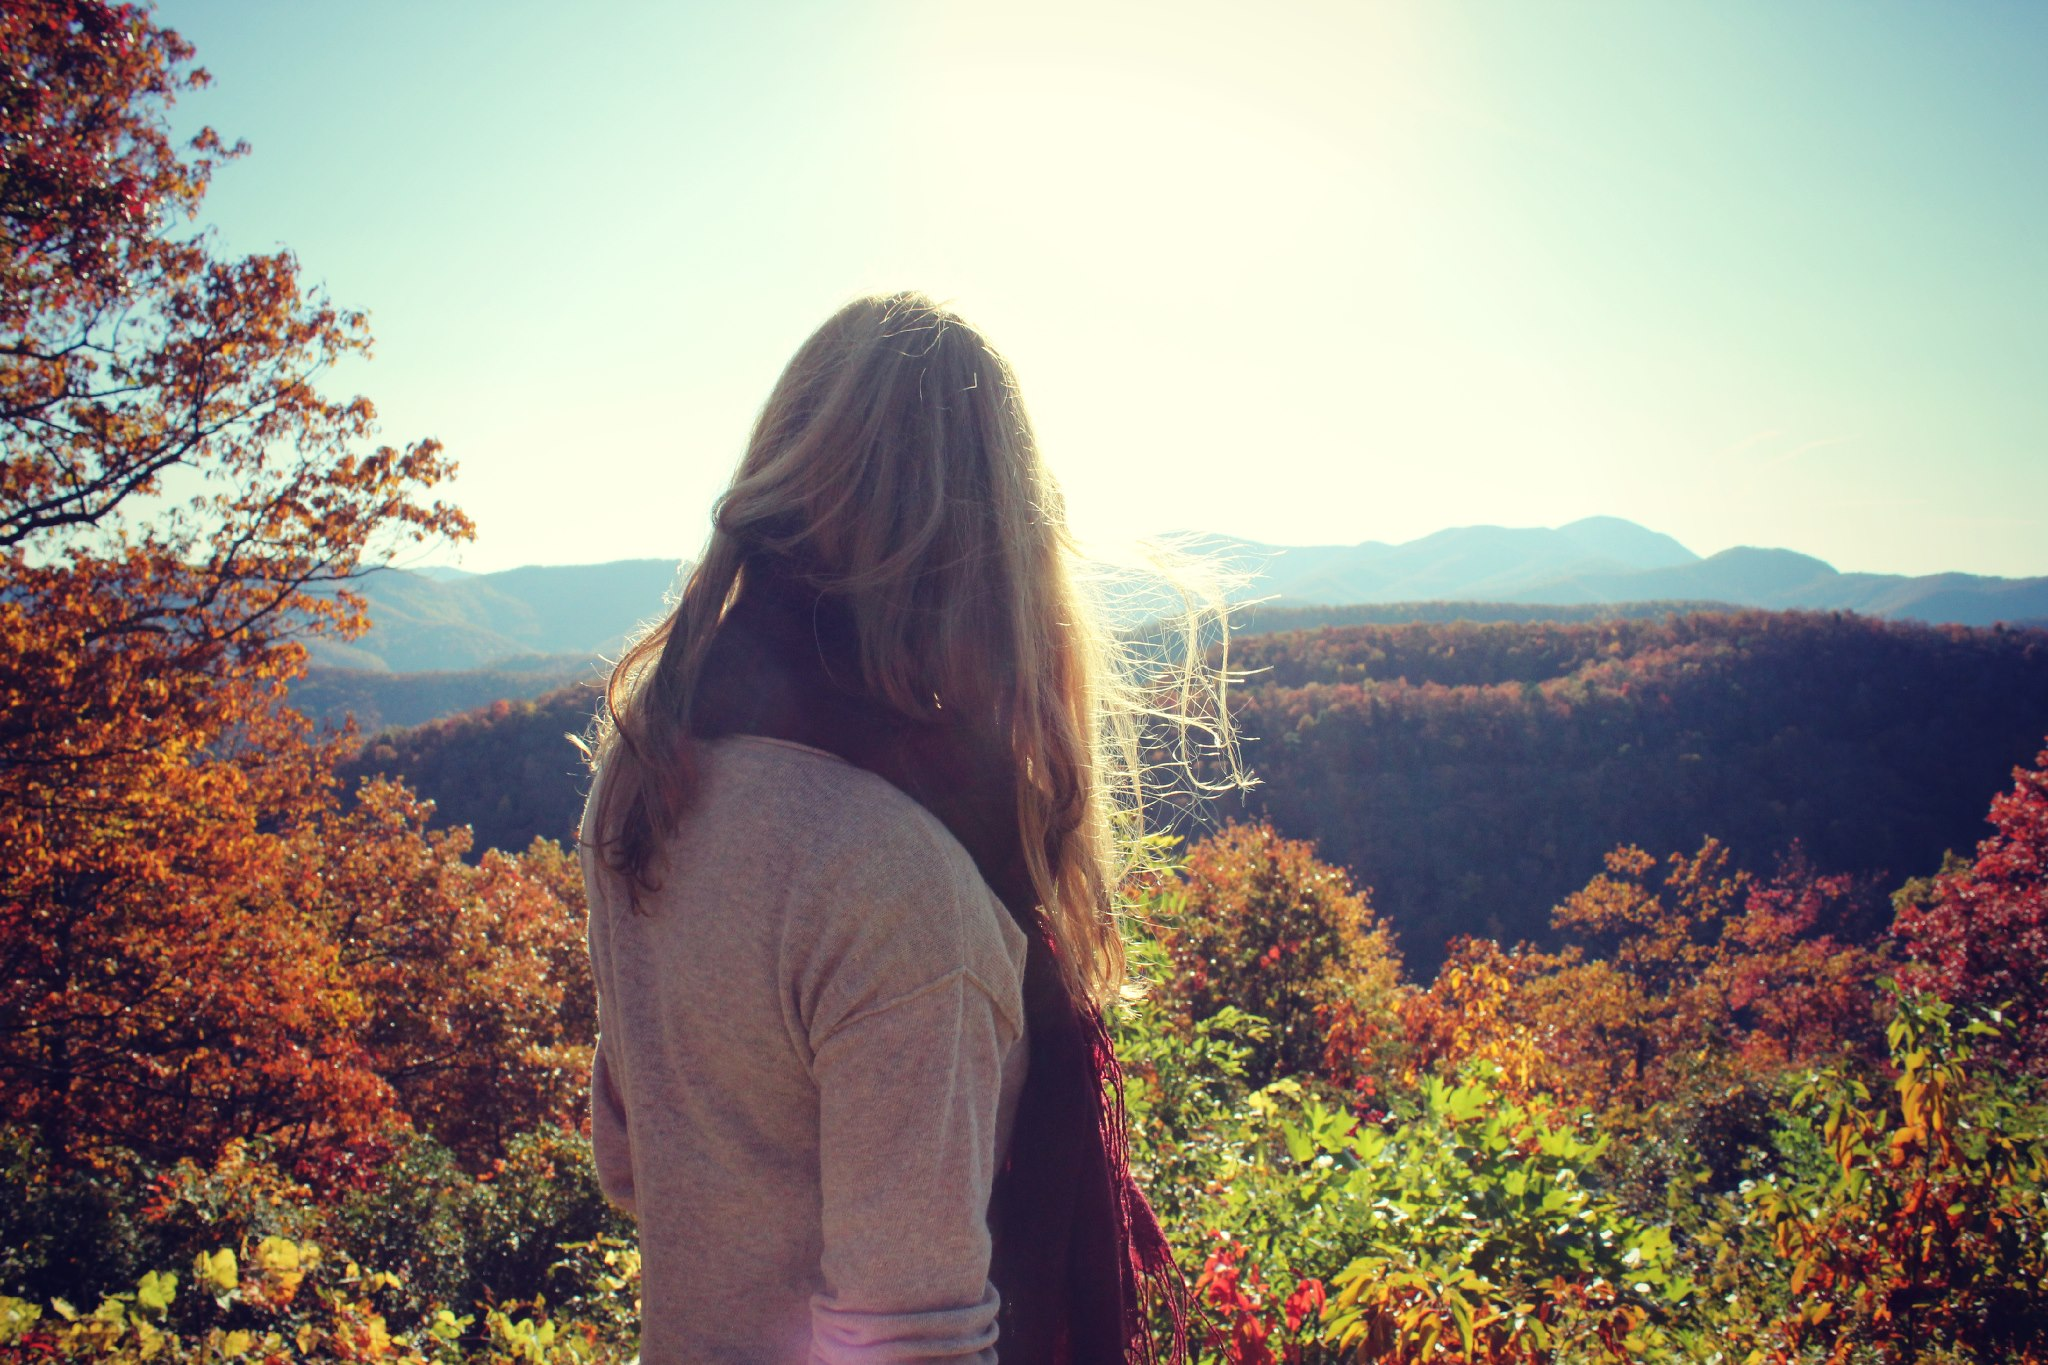 Loved my time at UNCA college and the Blue Ridge Parkway in North Carolina, USA.